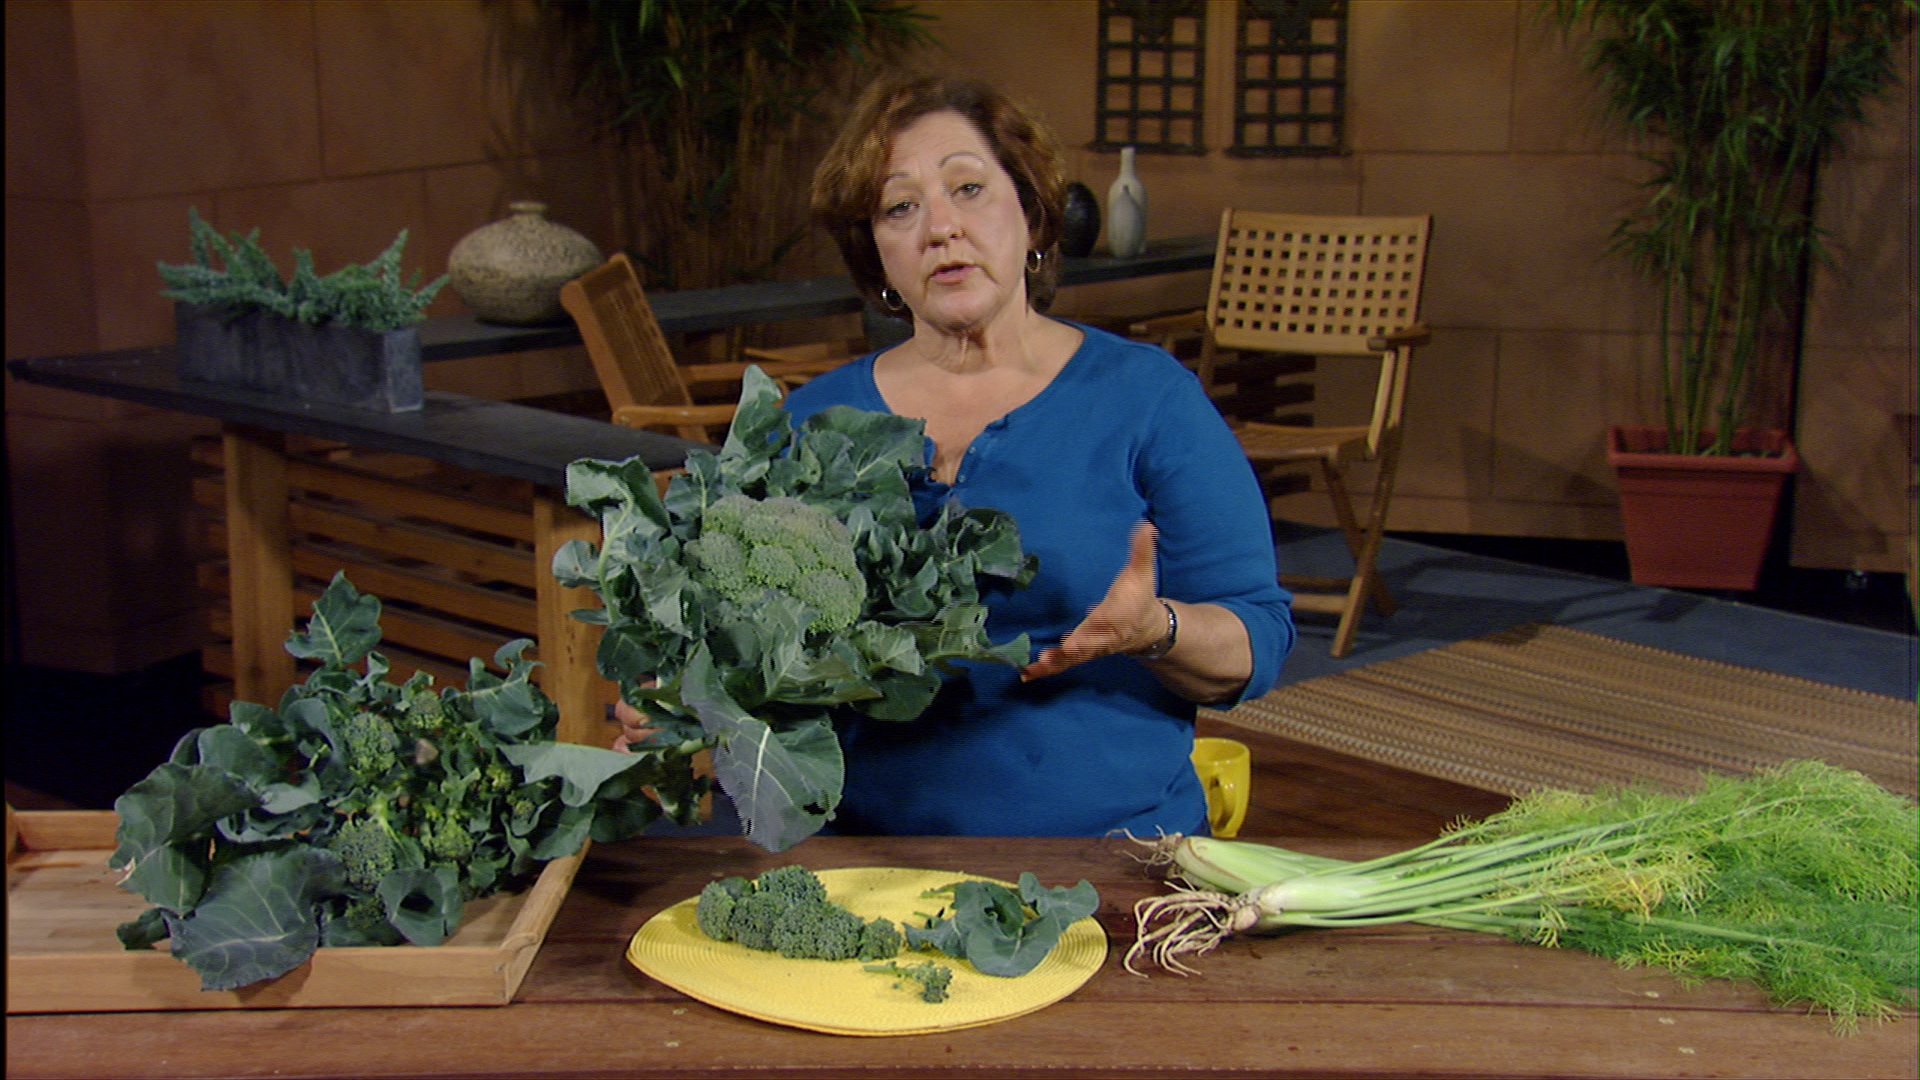 how to cut broccoli plants Trisha Shirey